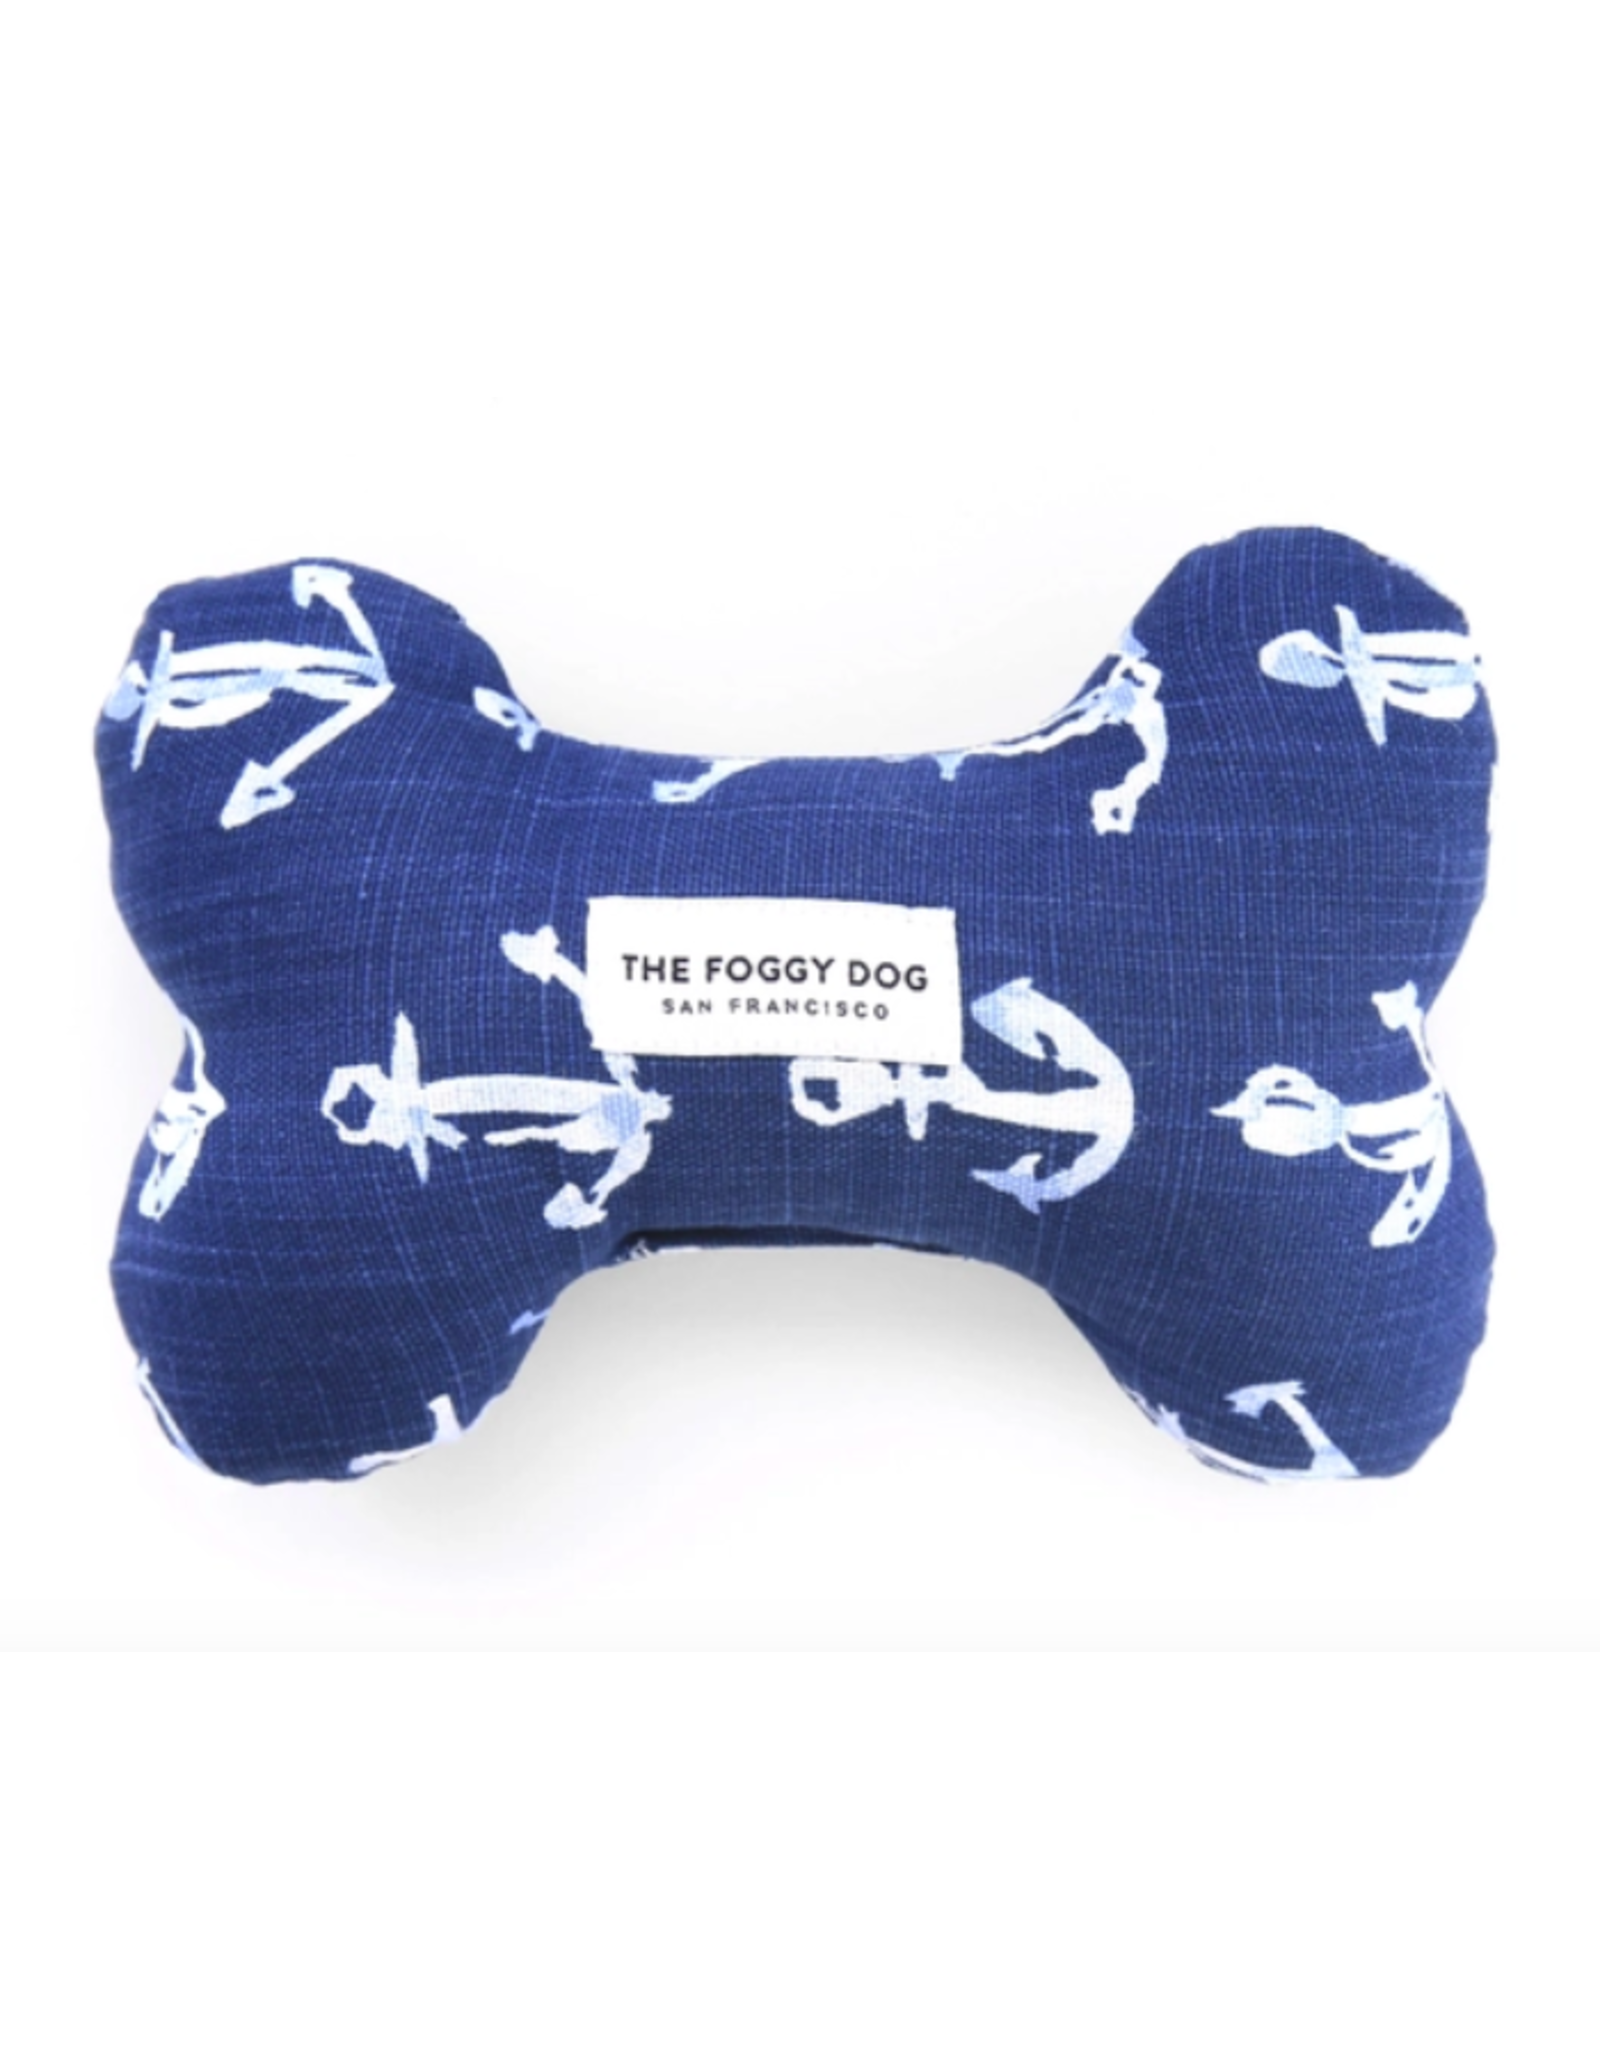 The Foggy Dog Down By The Sea Dog Bone Squeaky Toy